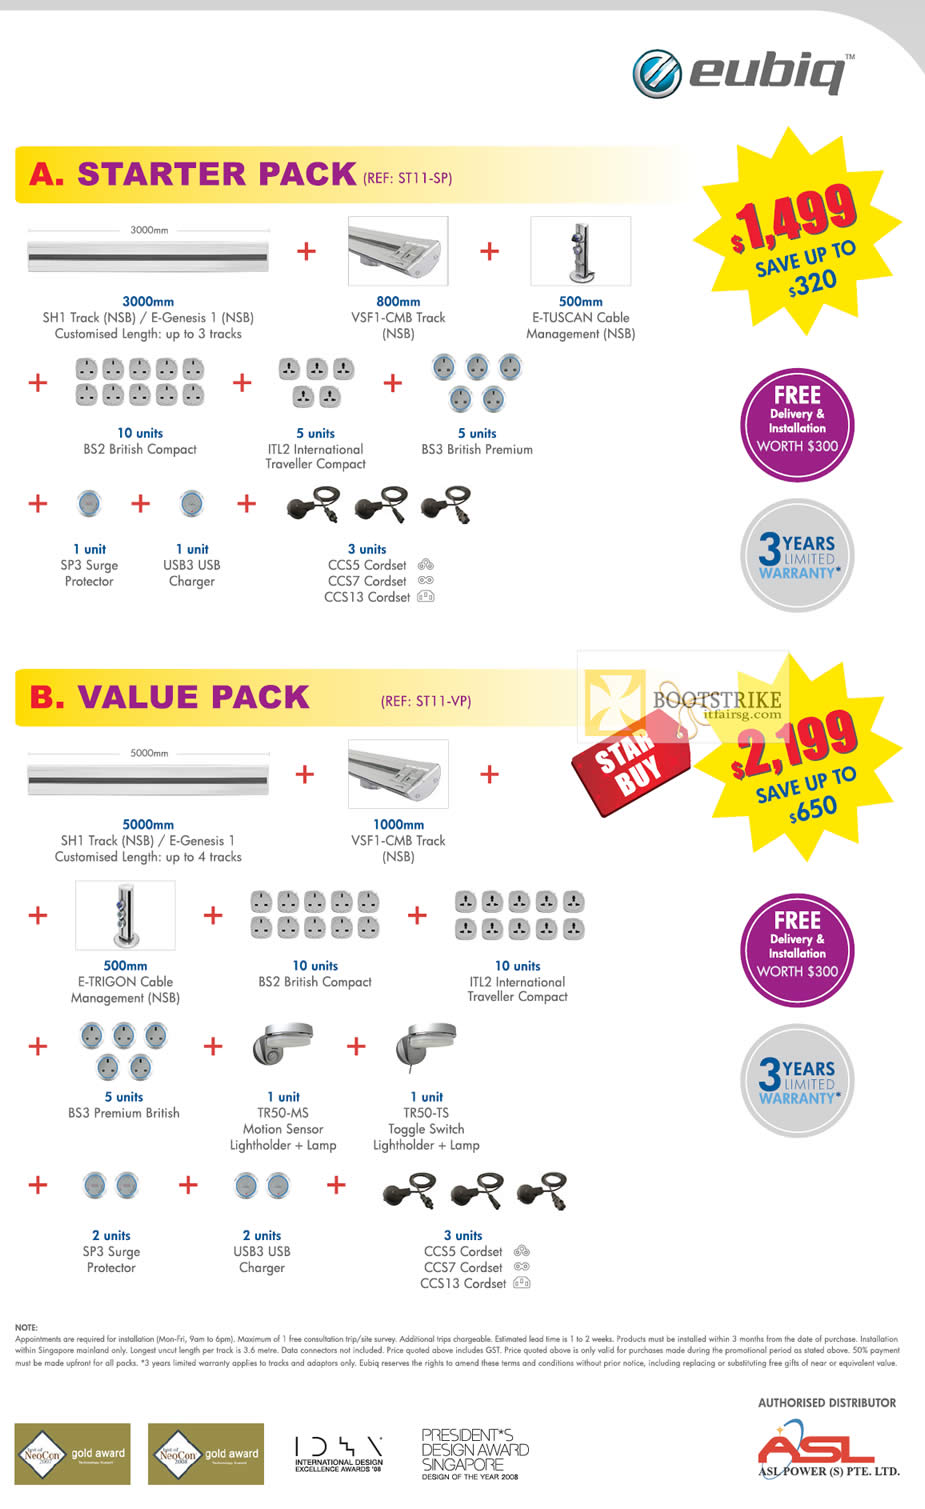 COMEX 2012 price list image brochure of Eubiq GSS Flexible Power Outlet System Starter Pack, Value Pack